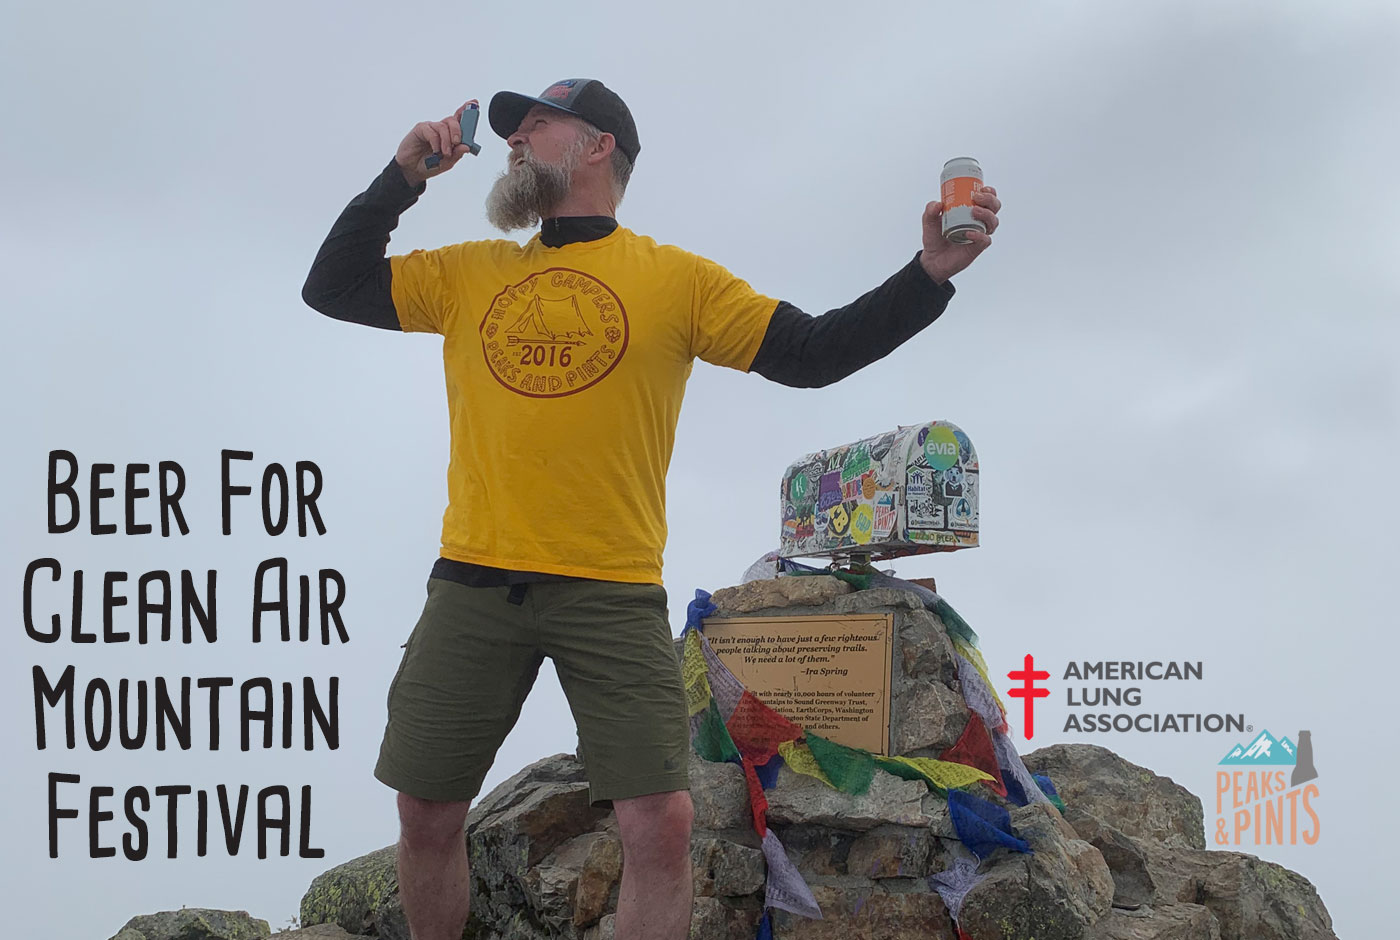 Beer-For-Clean-Air-Mountain-Festival-calendar